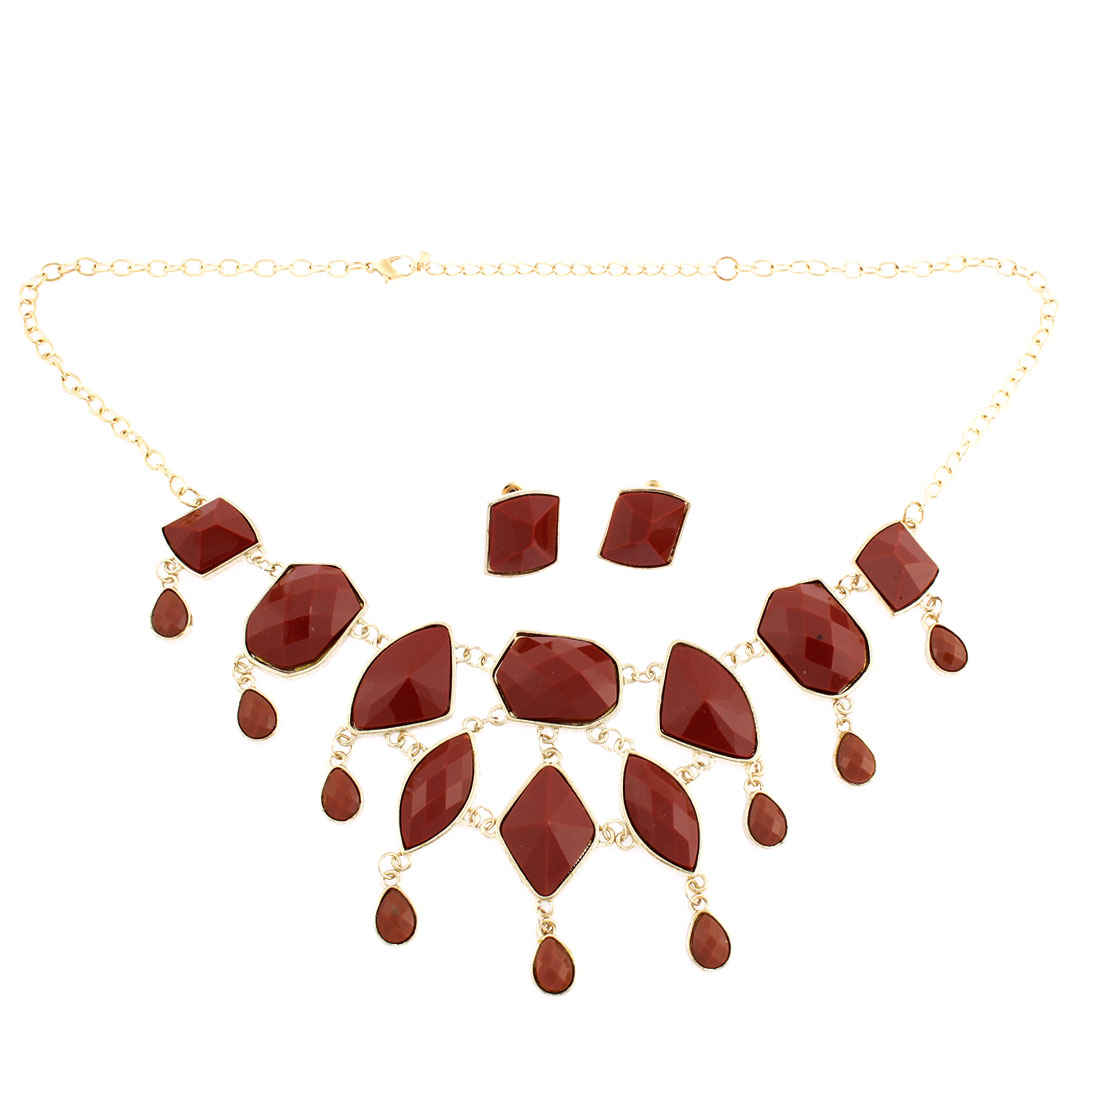 Brick Red Faceted Stud Drop Bib Chain Necklace Choker Earrings Jewelry Set